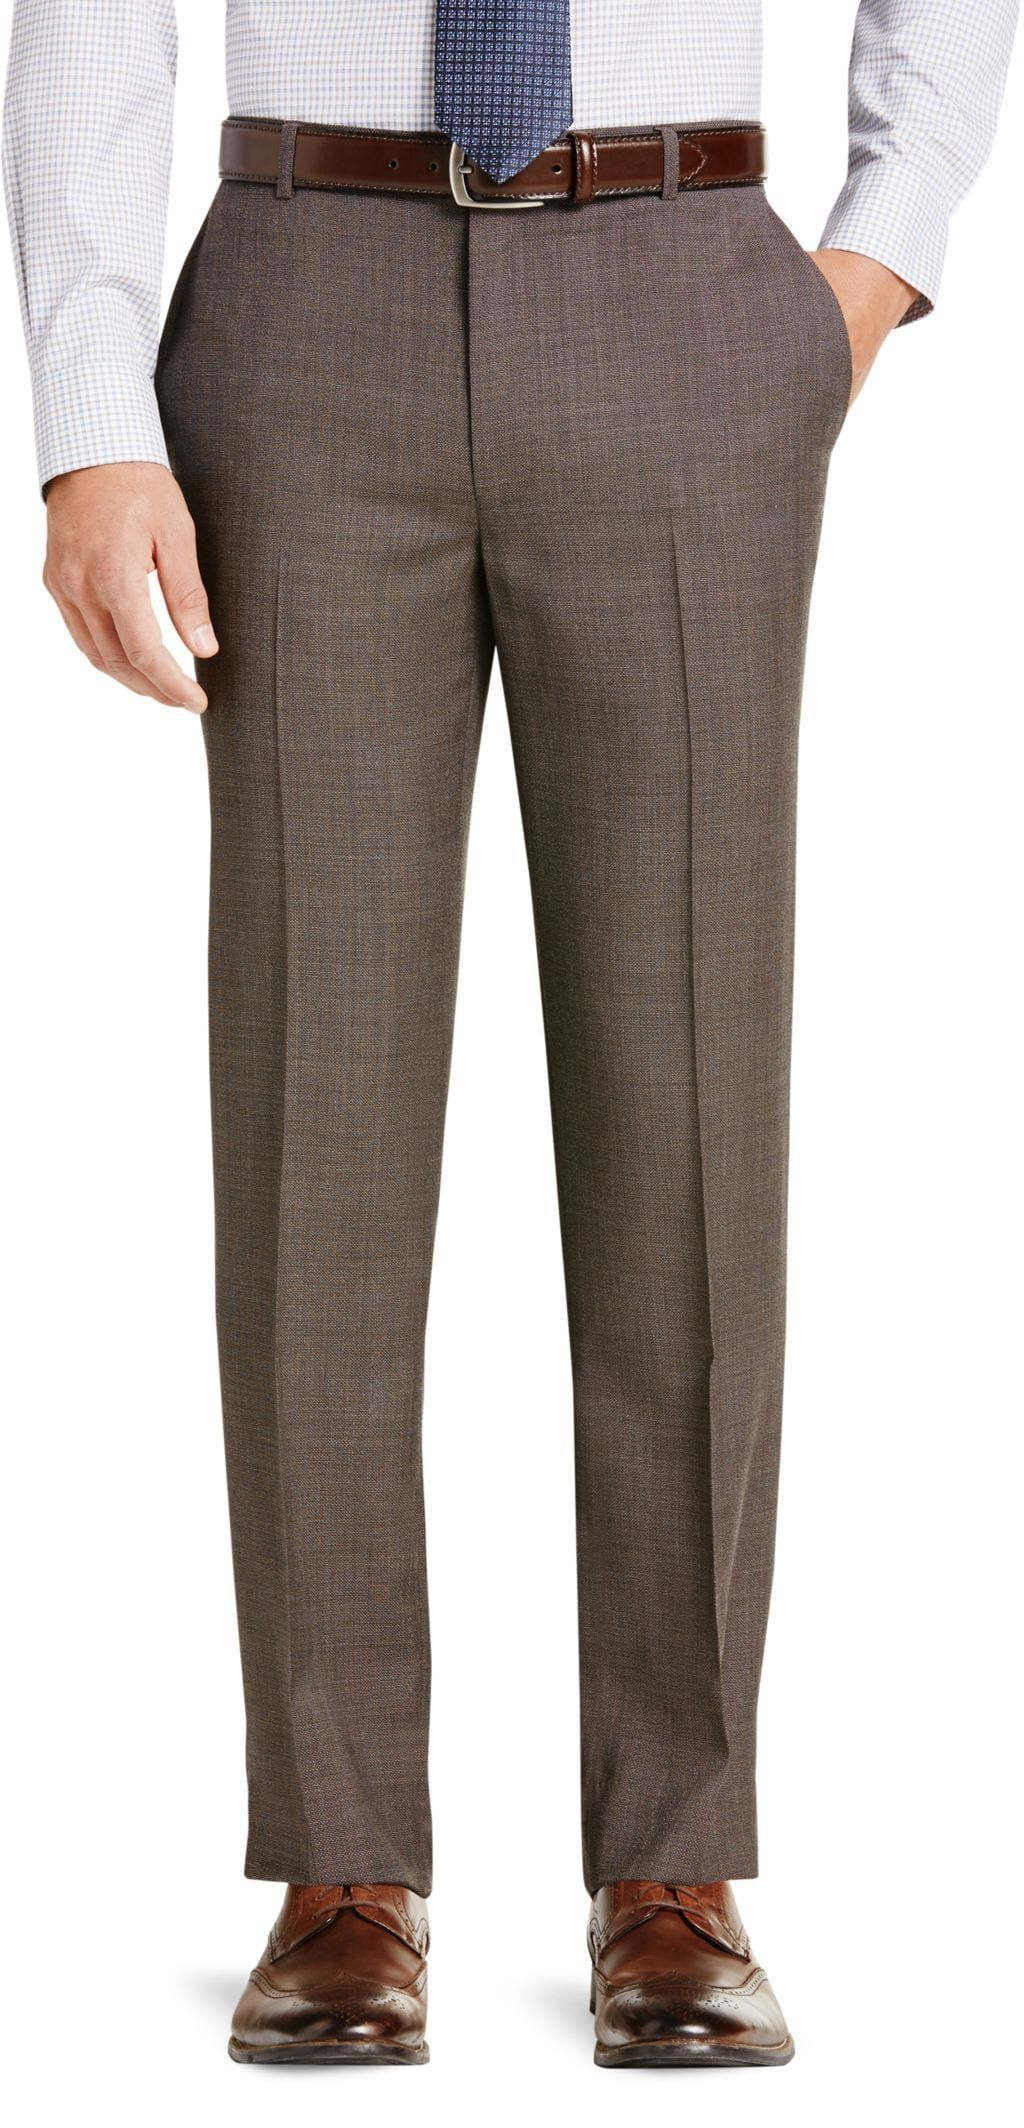 b7f269a4f07963 Traveler Collection Tailored Fit Flat Front Dress Pants